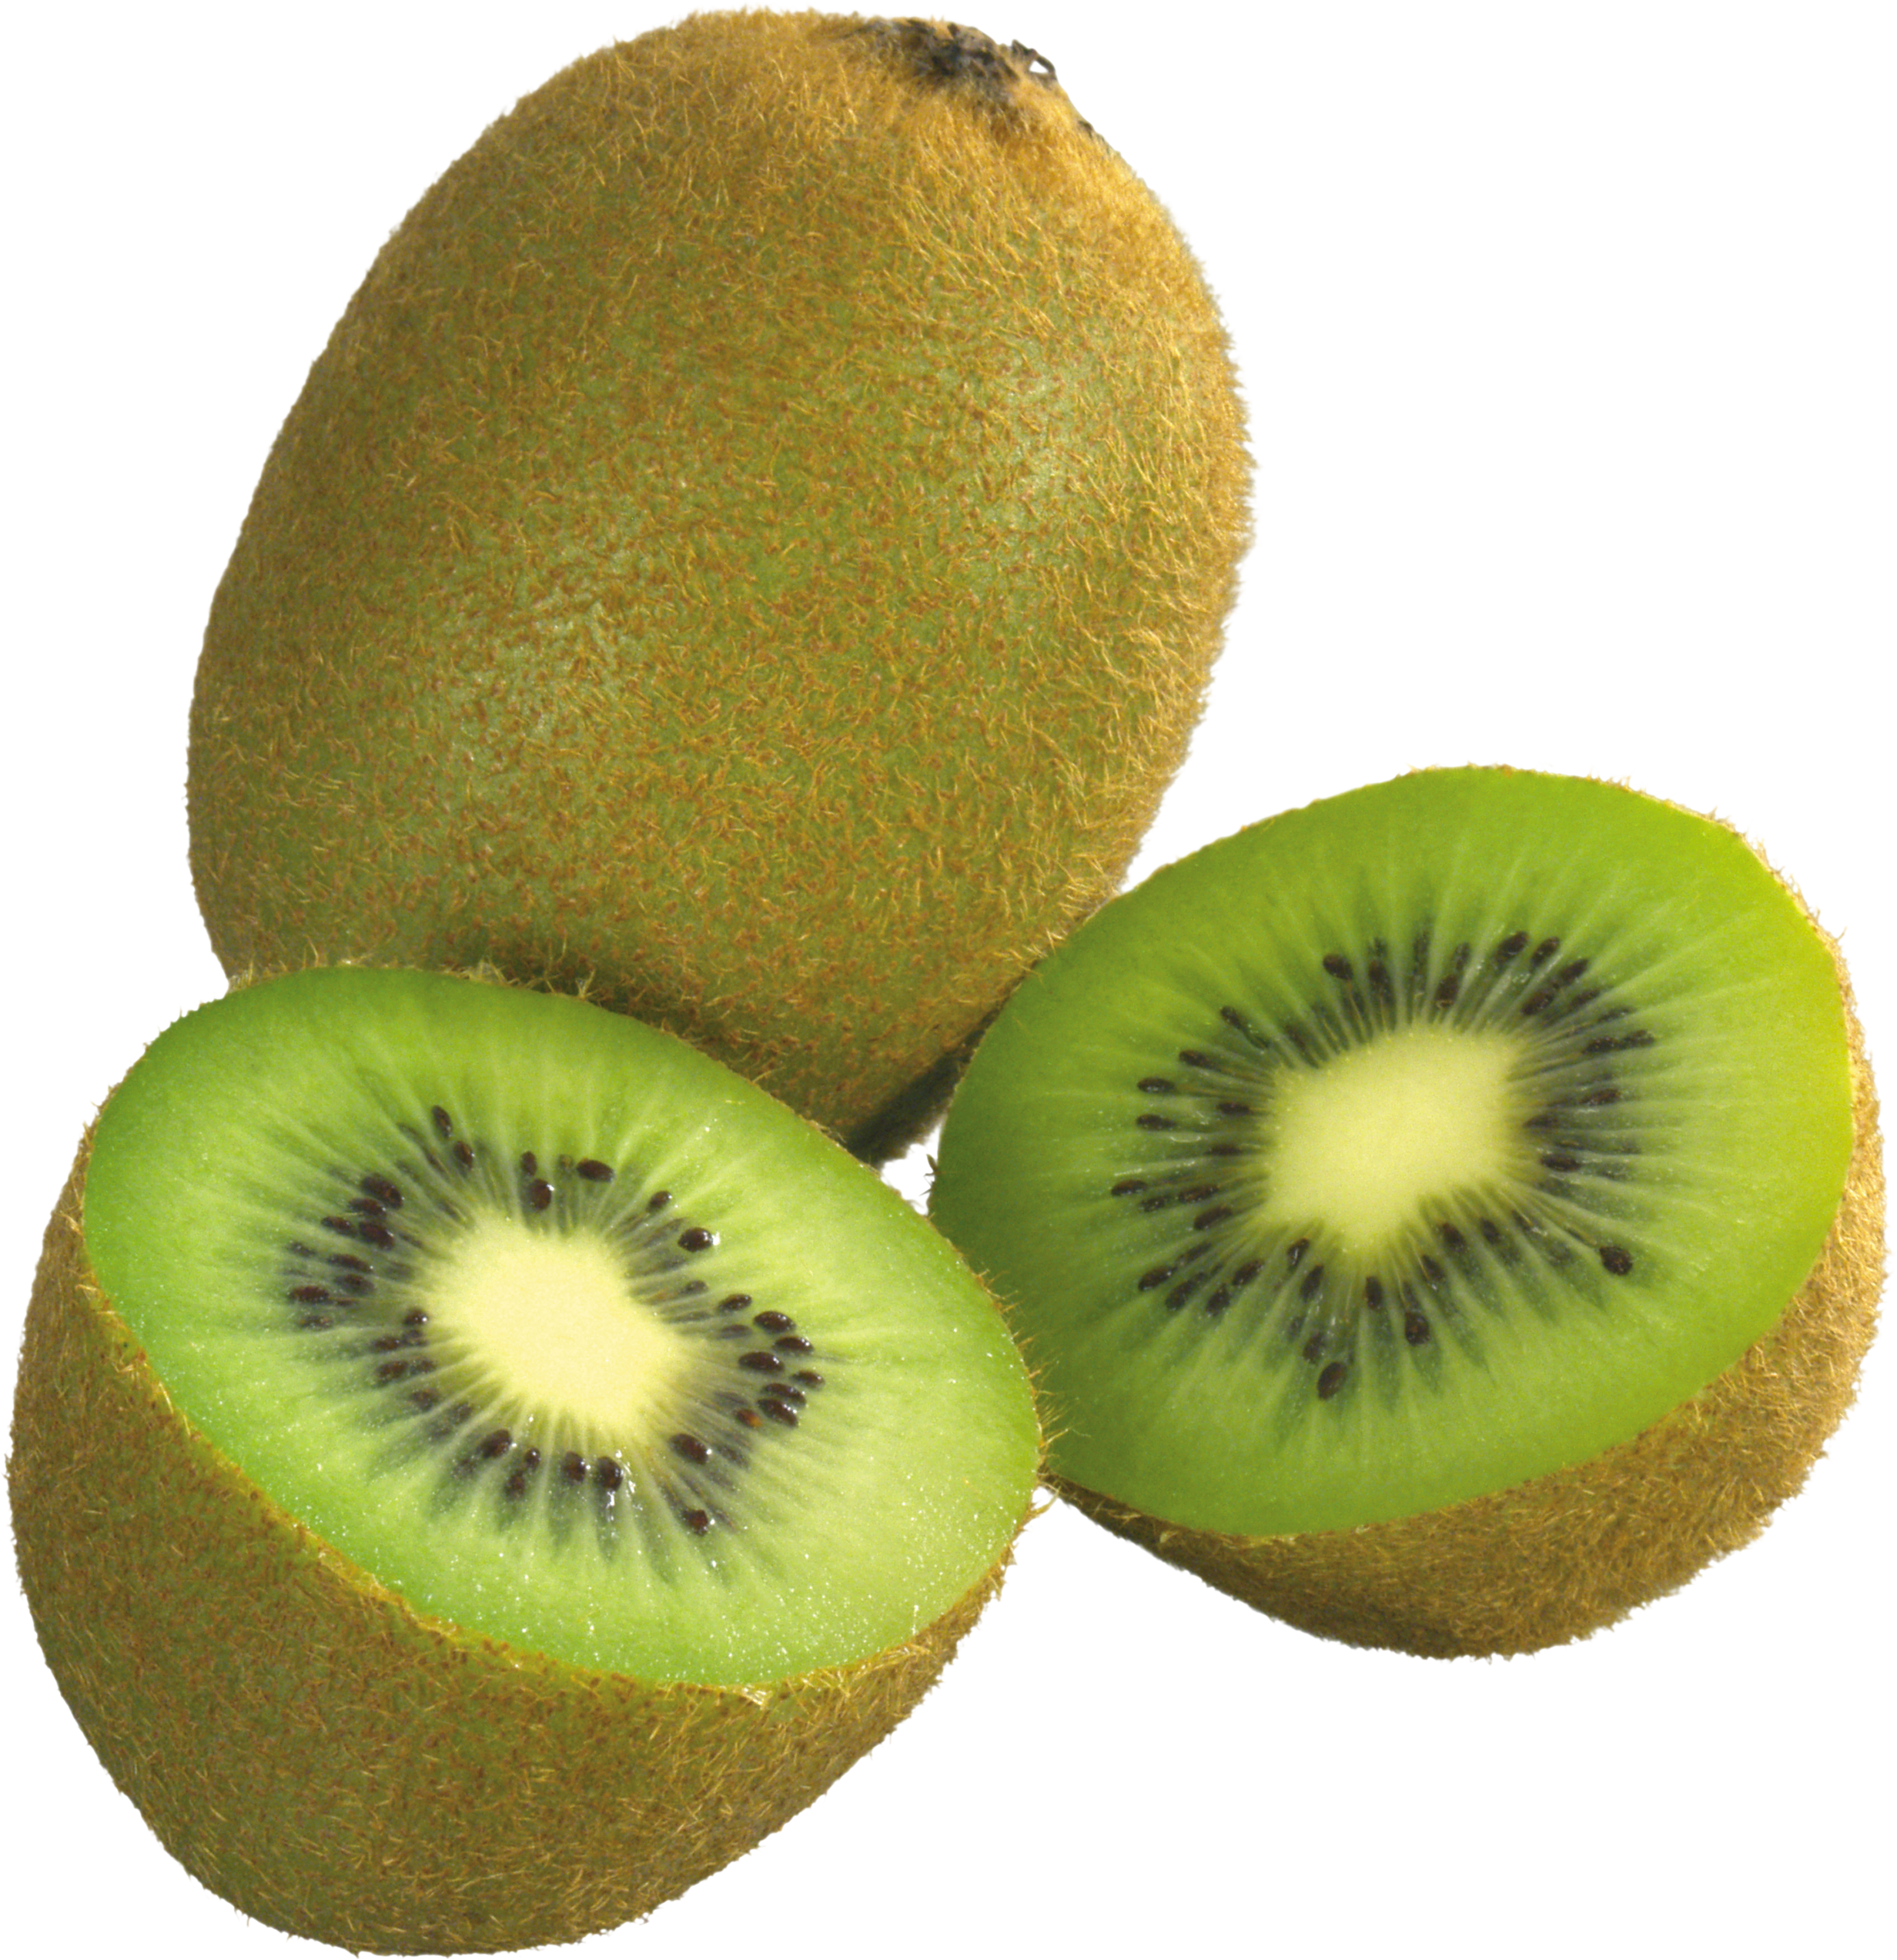 Free download png image. Kiwi fruit pictures